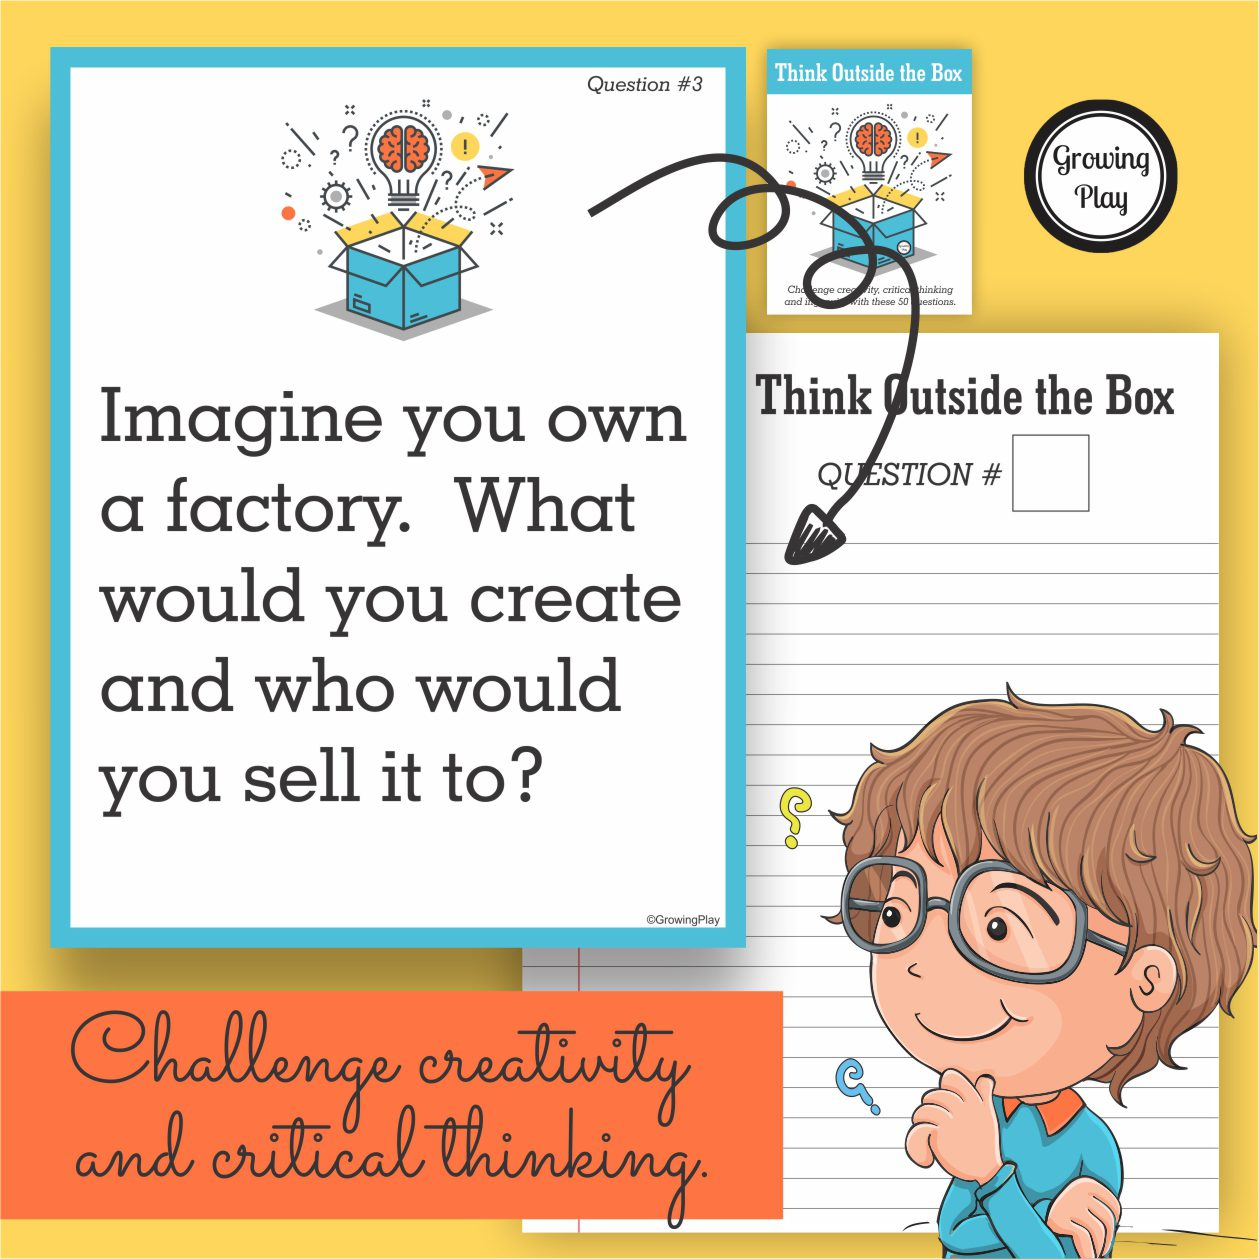 Do you want to challenge creativity and critical thinking in children?  Does your child get bored easily with regular school assignments or requirements?  This free sample activity from Think Outside the Box helps children to use the imagination, creativity, critical thinking and written expression skills.